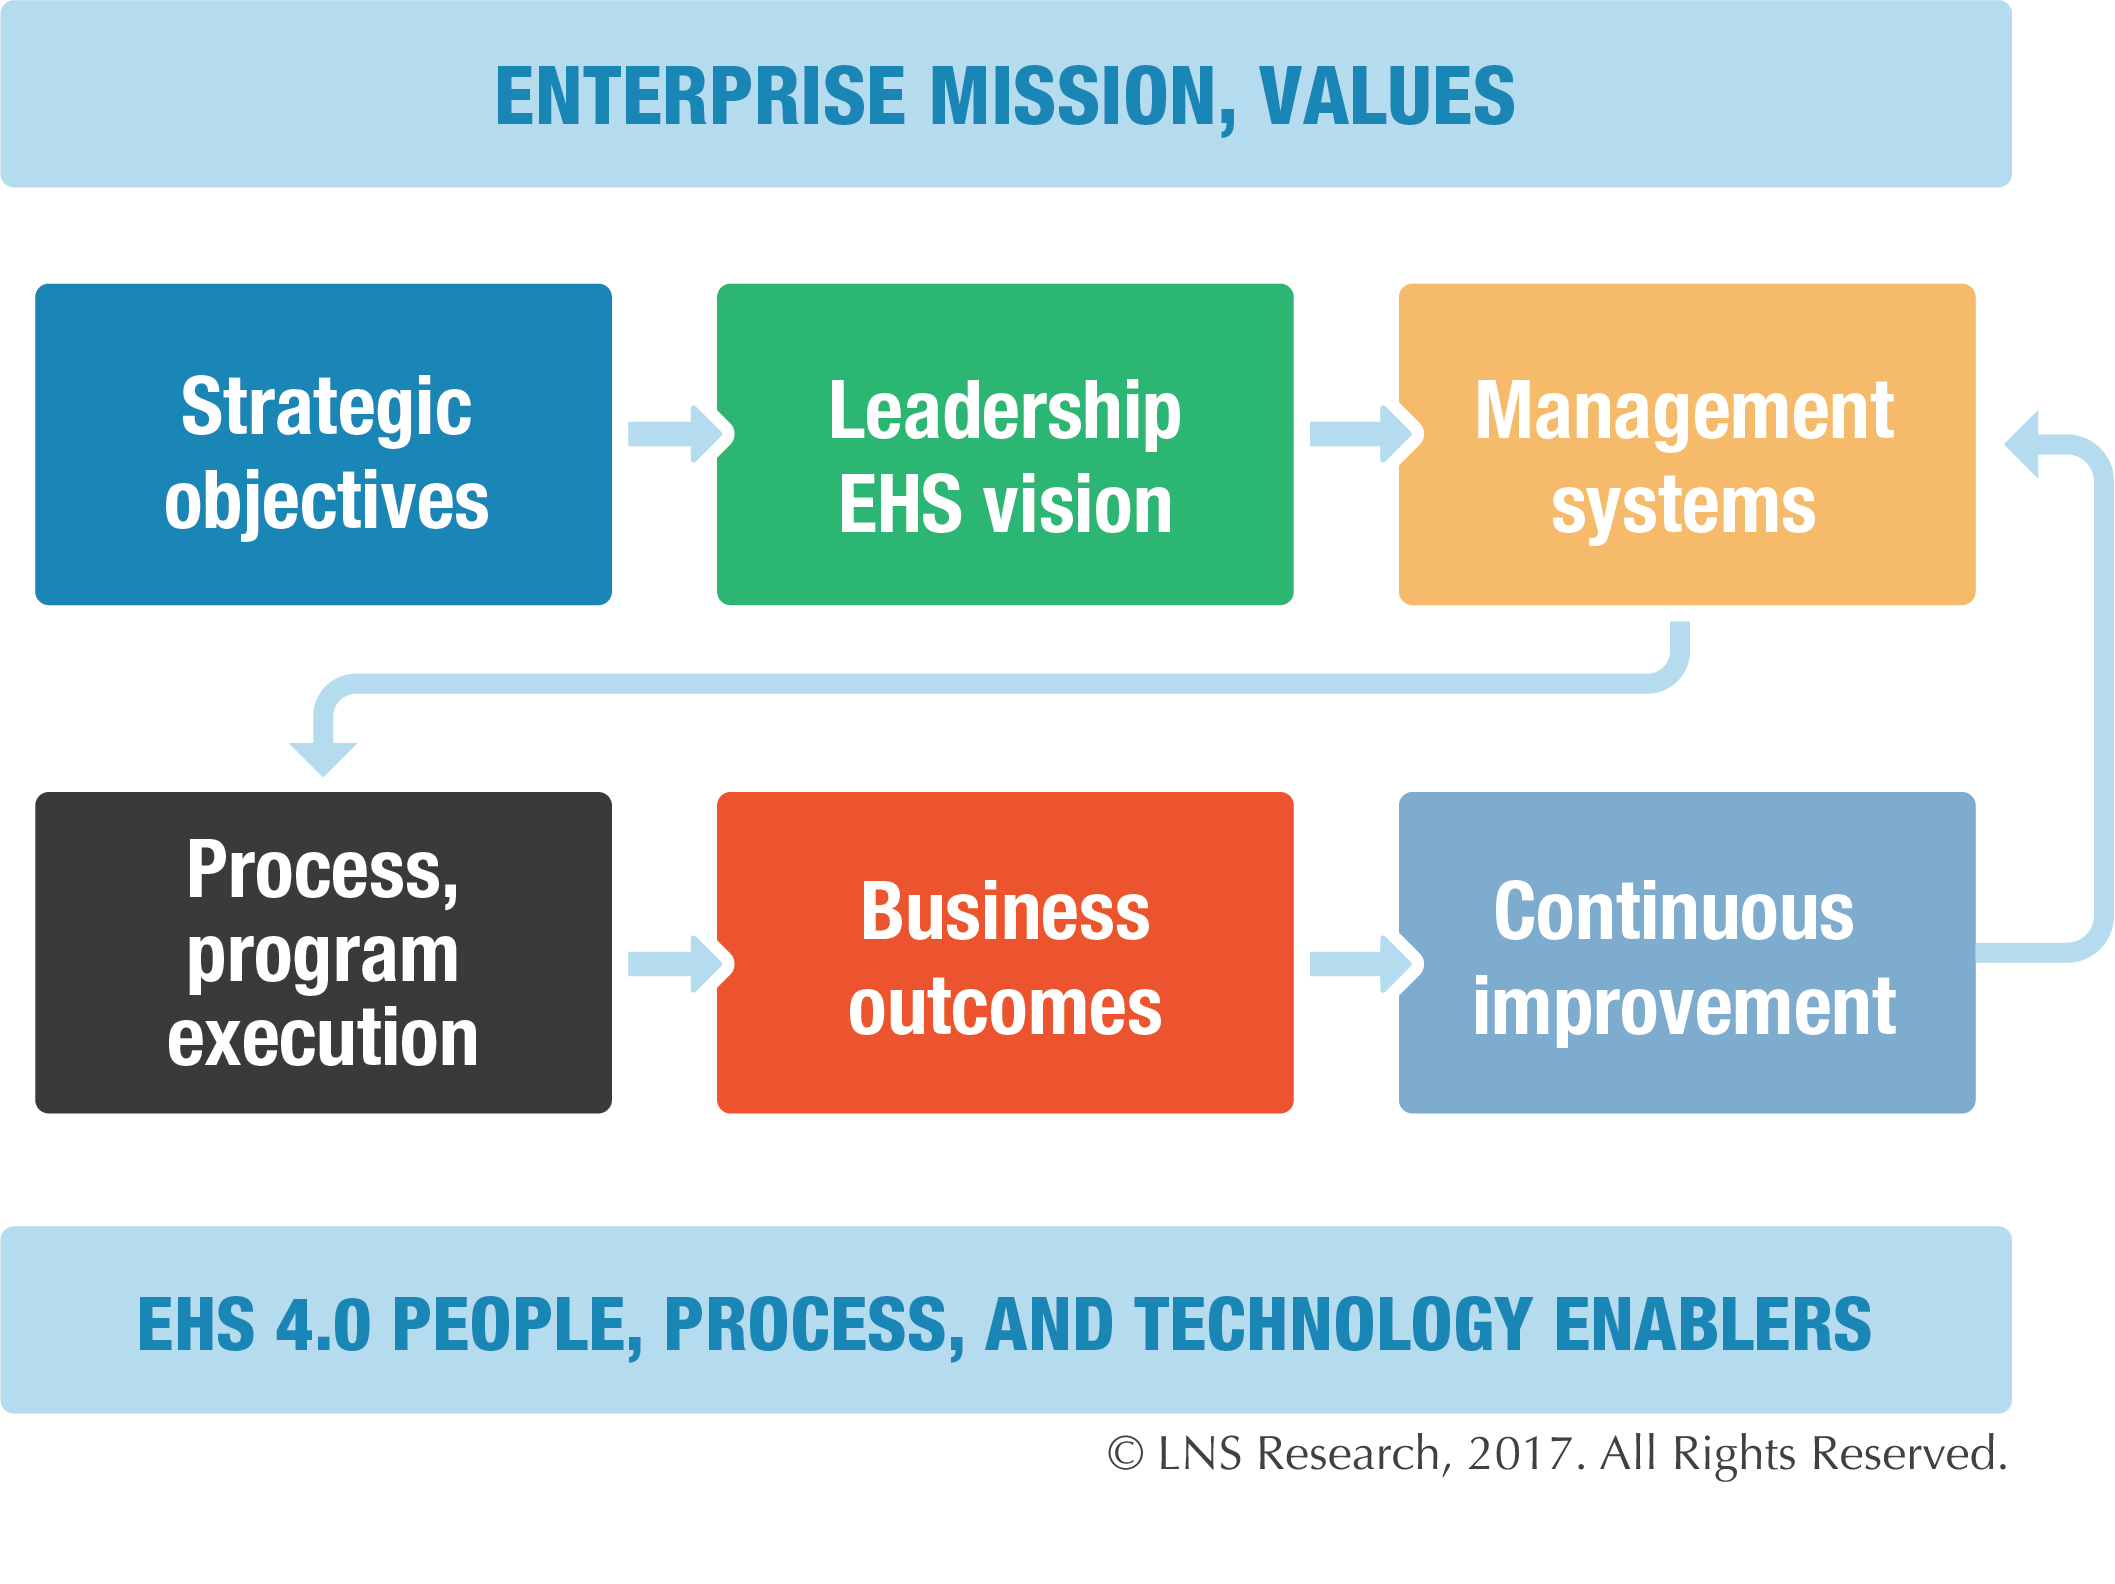 EHS 4.0 People, Process, and Technology Enablers